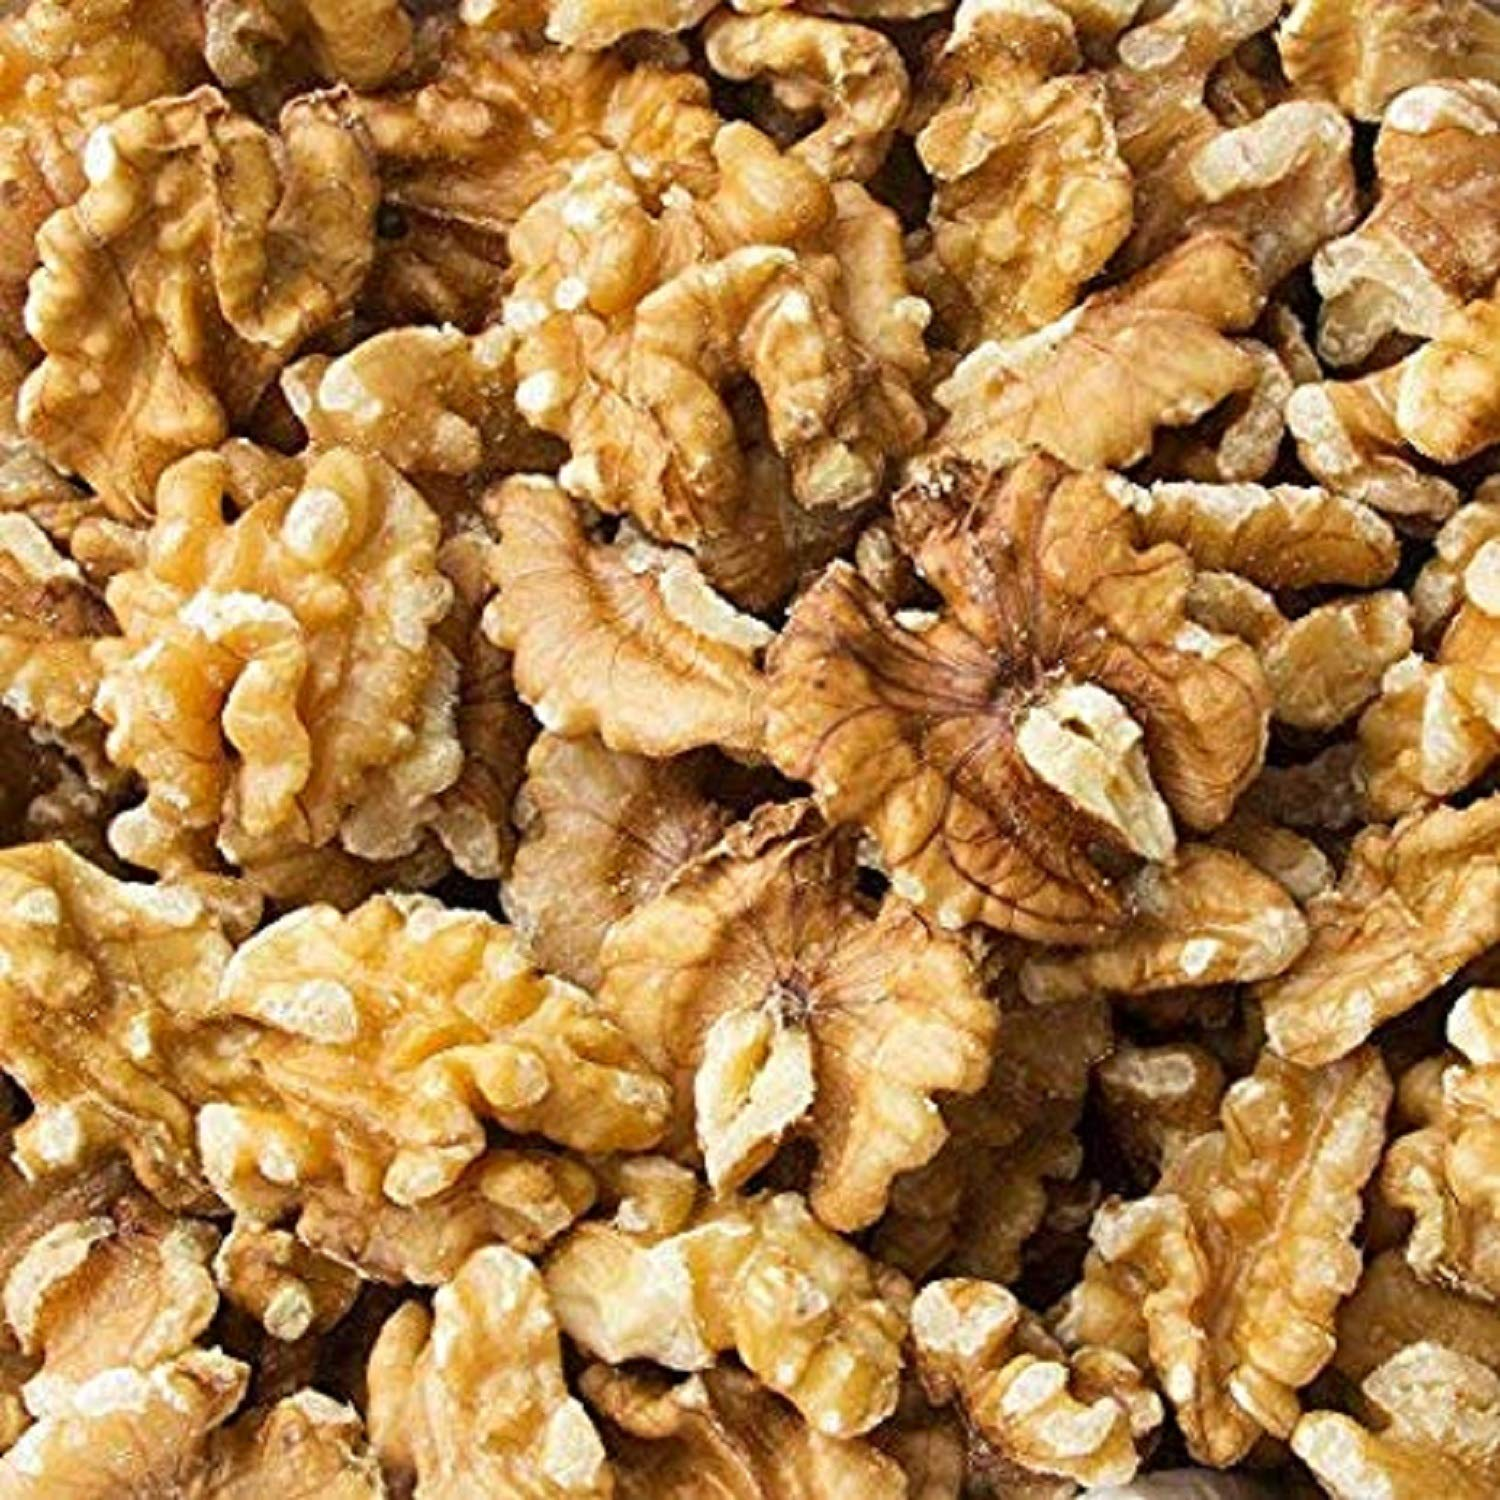 Freshly Harvested California Light Chandler Raw shelled Walnuts Halves & Pieces - 5 LB